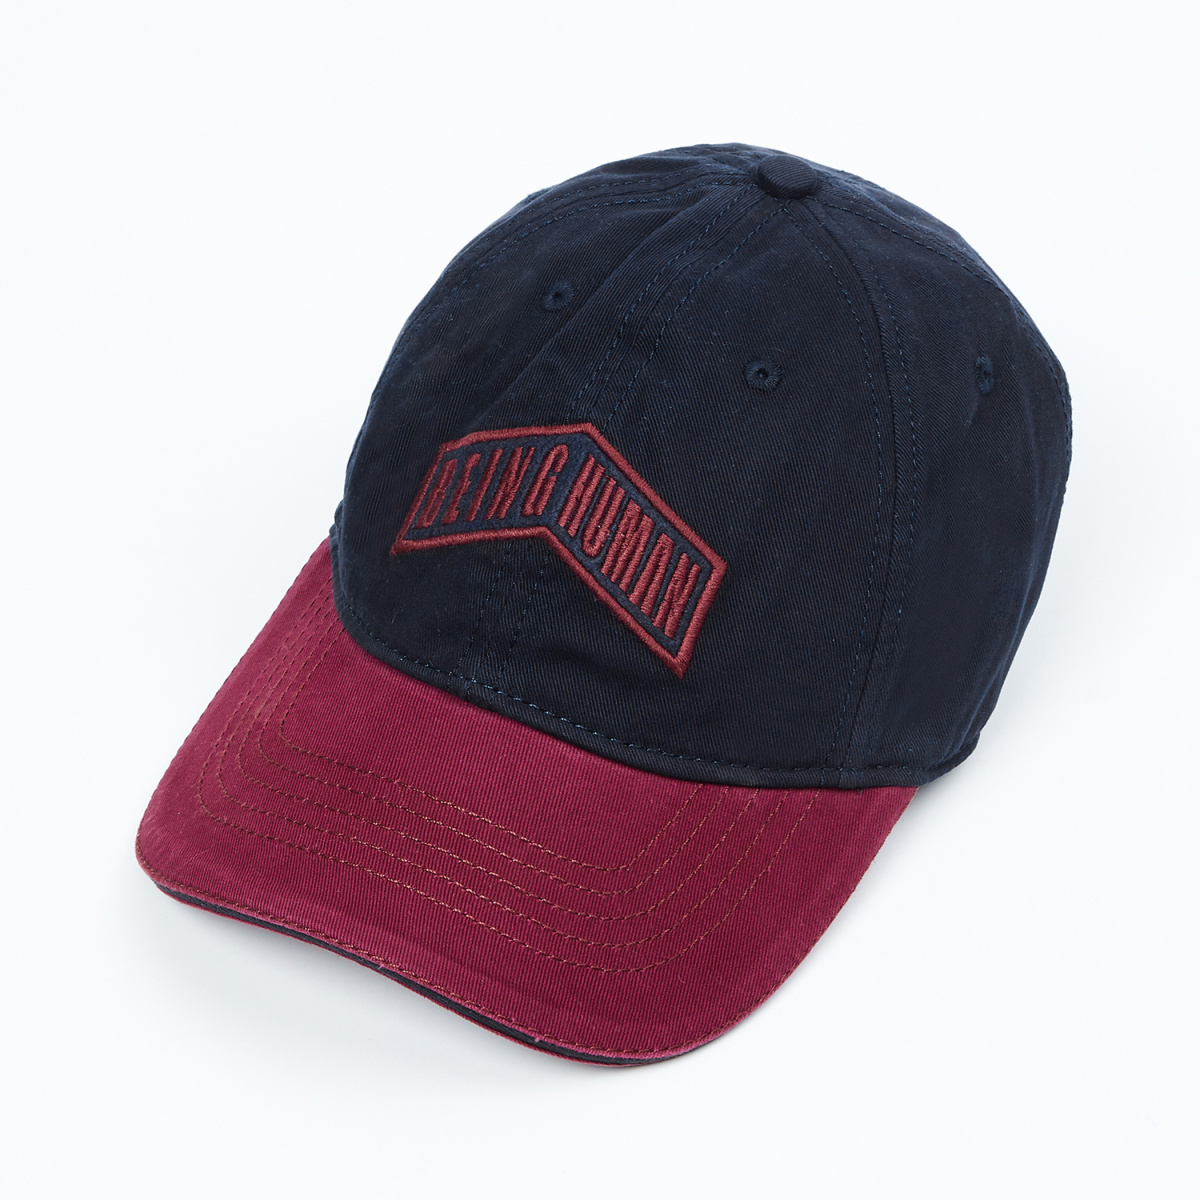 BEING HUMAN Men Embroidered Cap